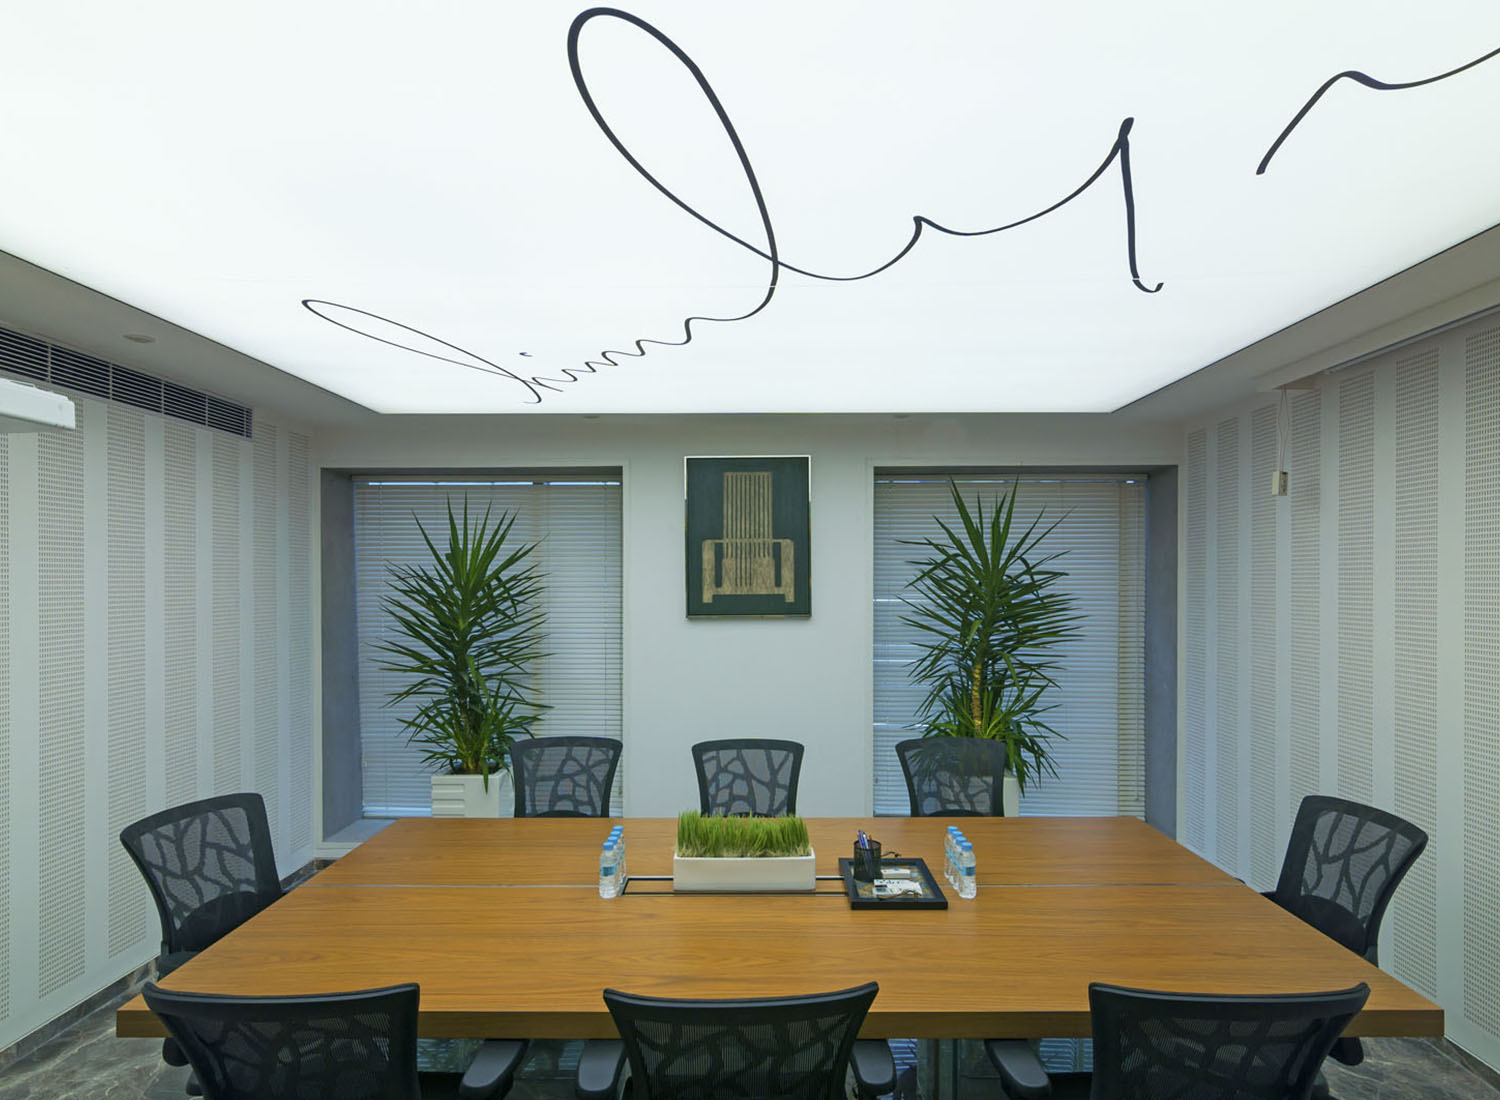 Stretch Ceiling Printed Translucent with Backlighting in Conference Room - Corporate